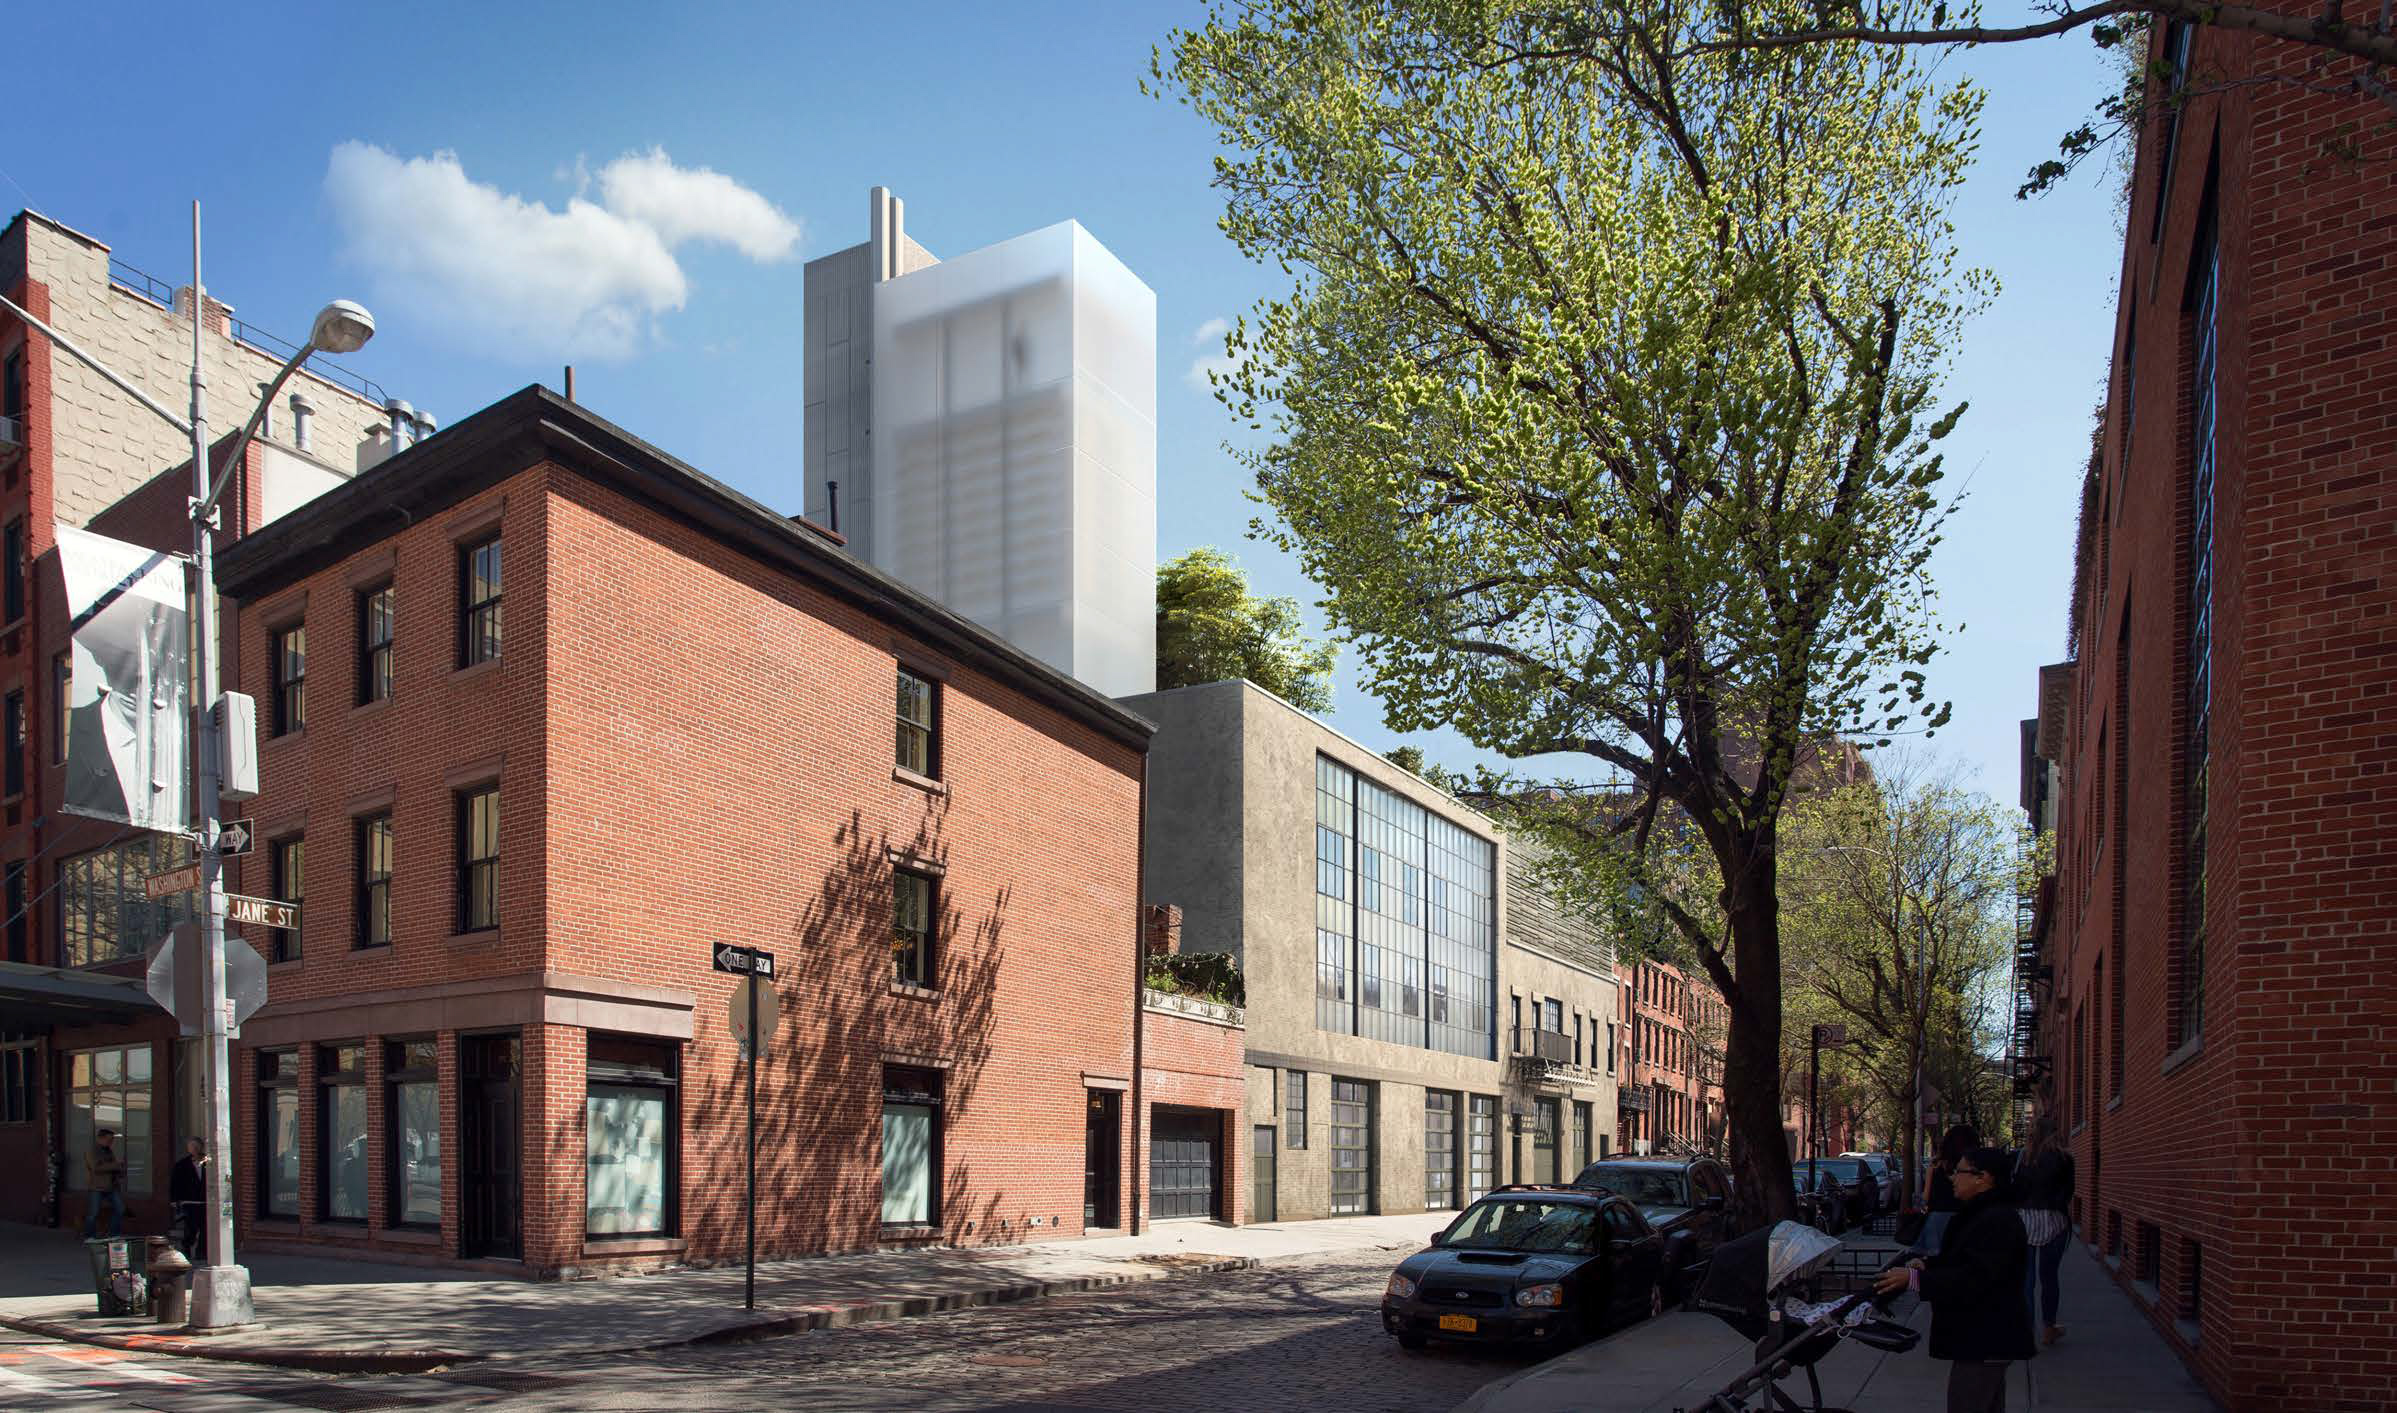 Previous proposal for 85-89 Jane Street